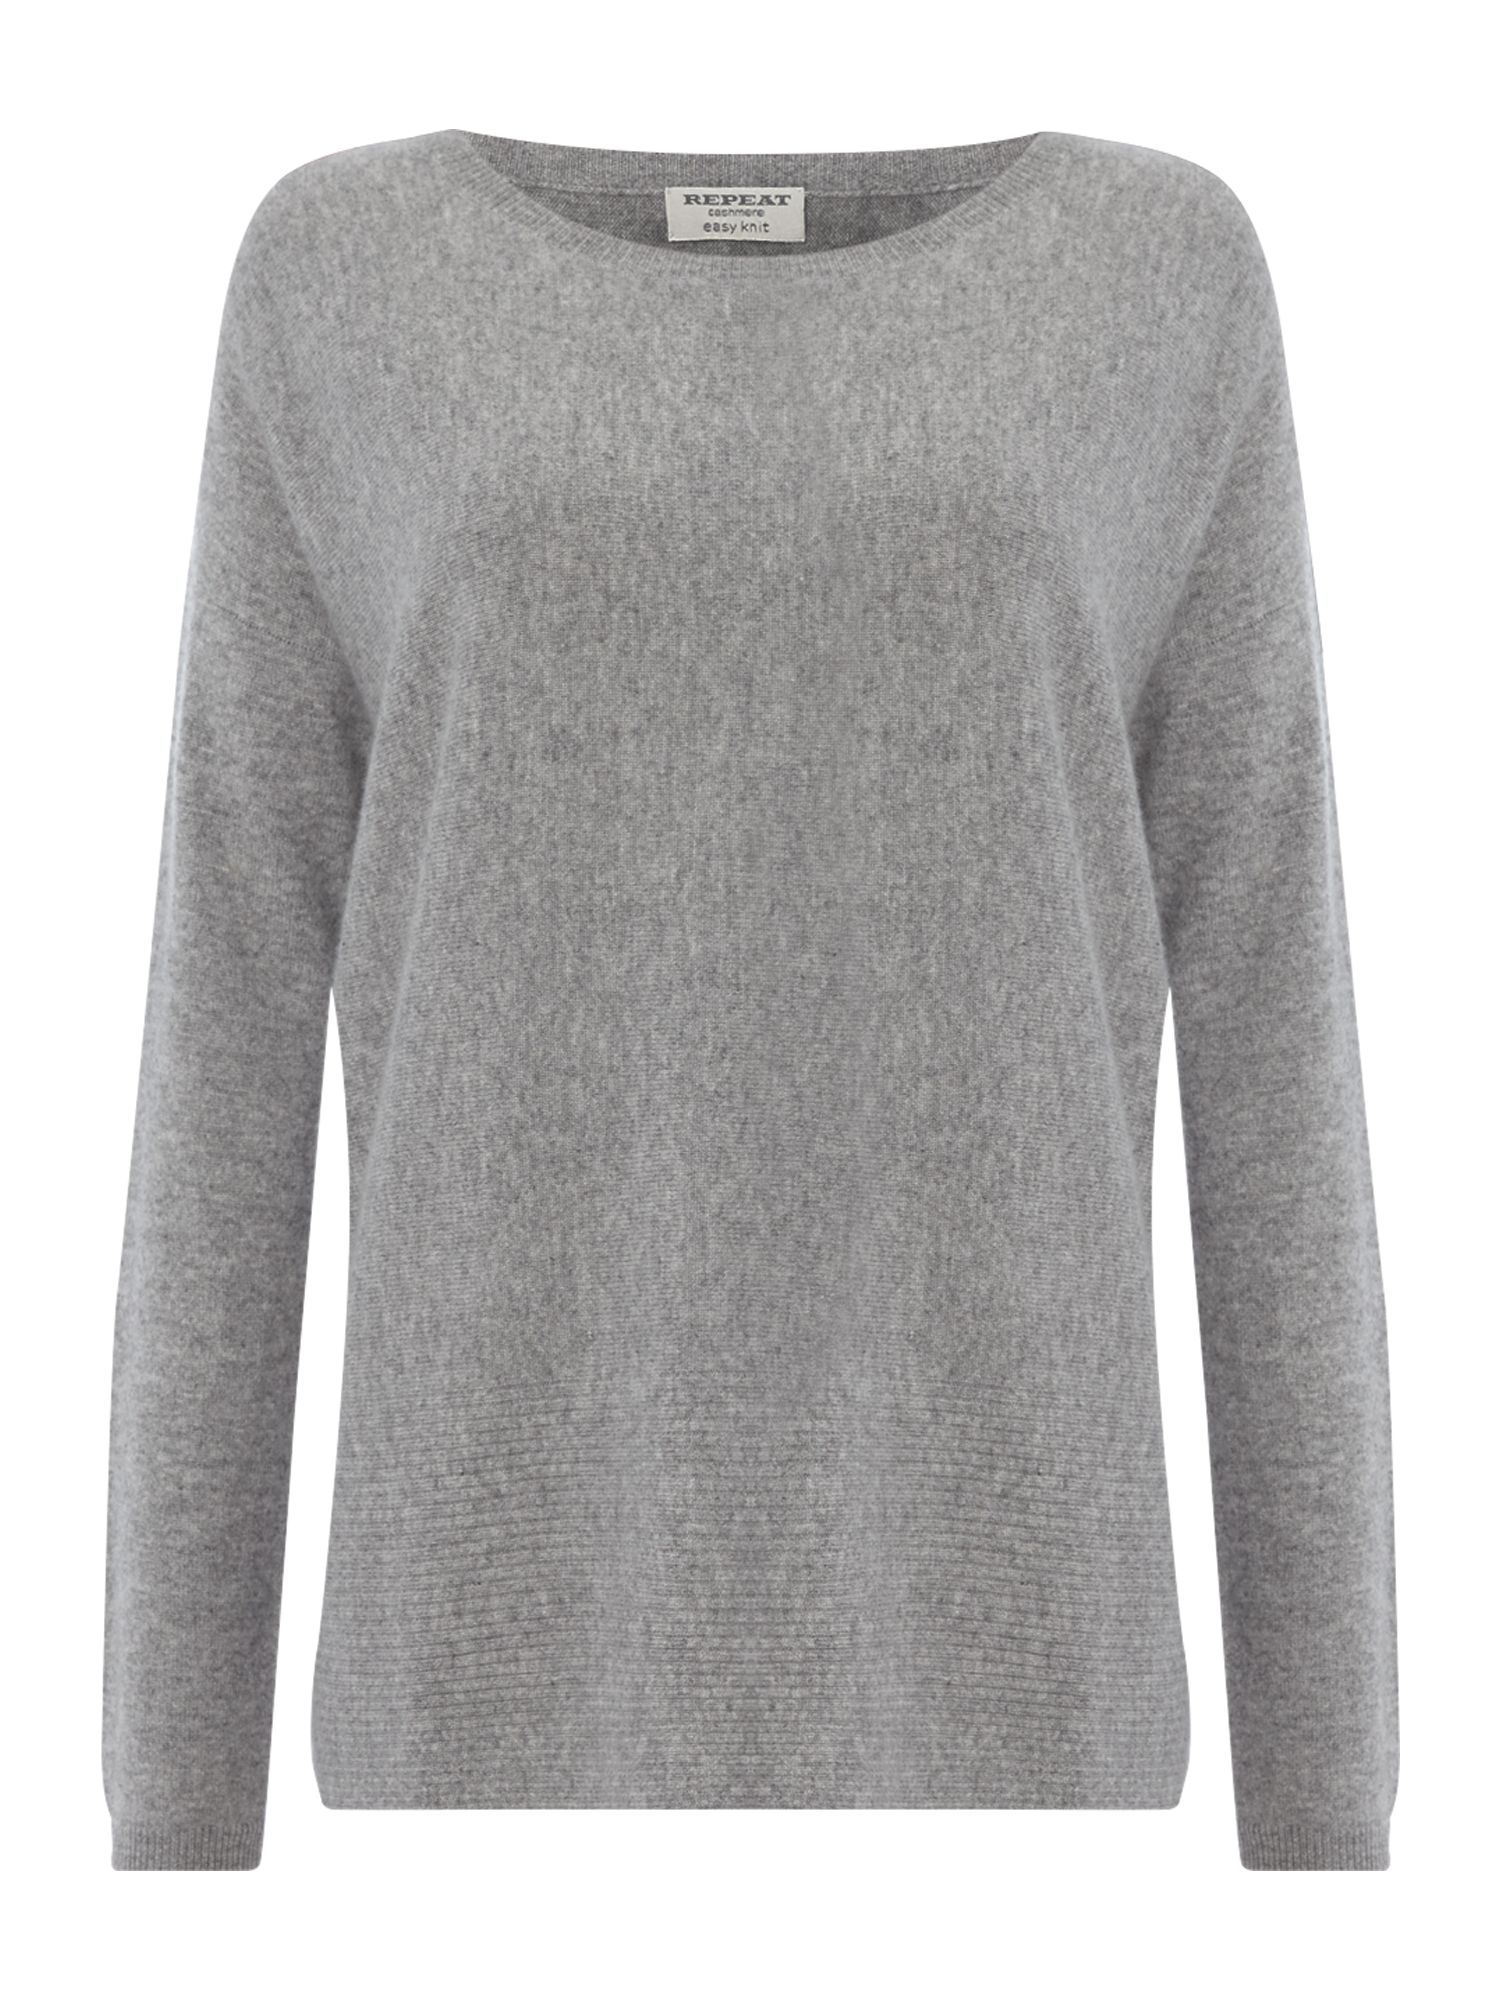 Repeat Cashmere Repeat Cashmere Round neck ribbed bottom jumper, Light Grey